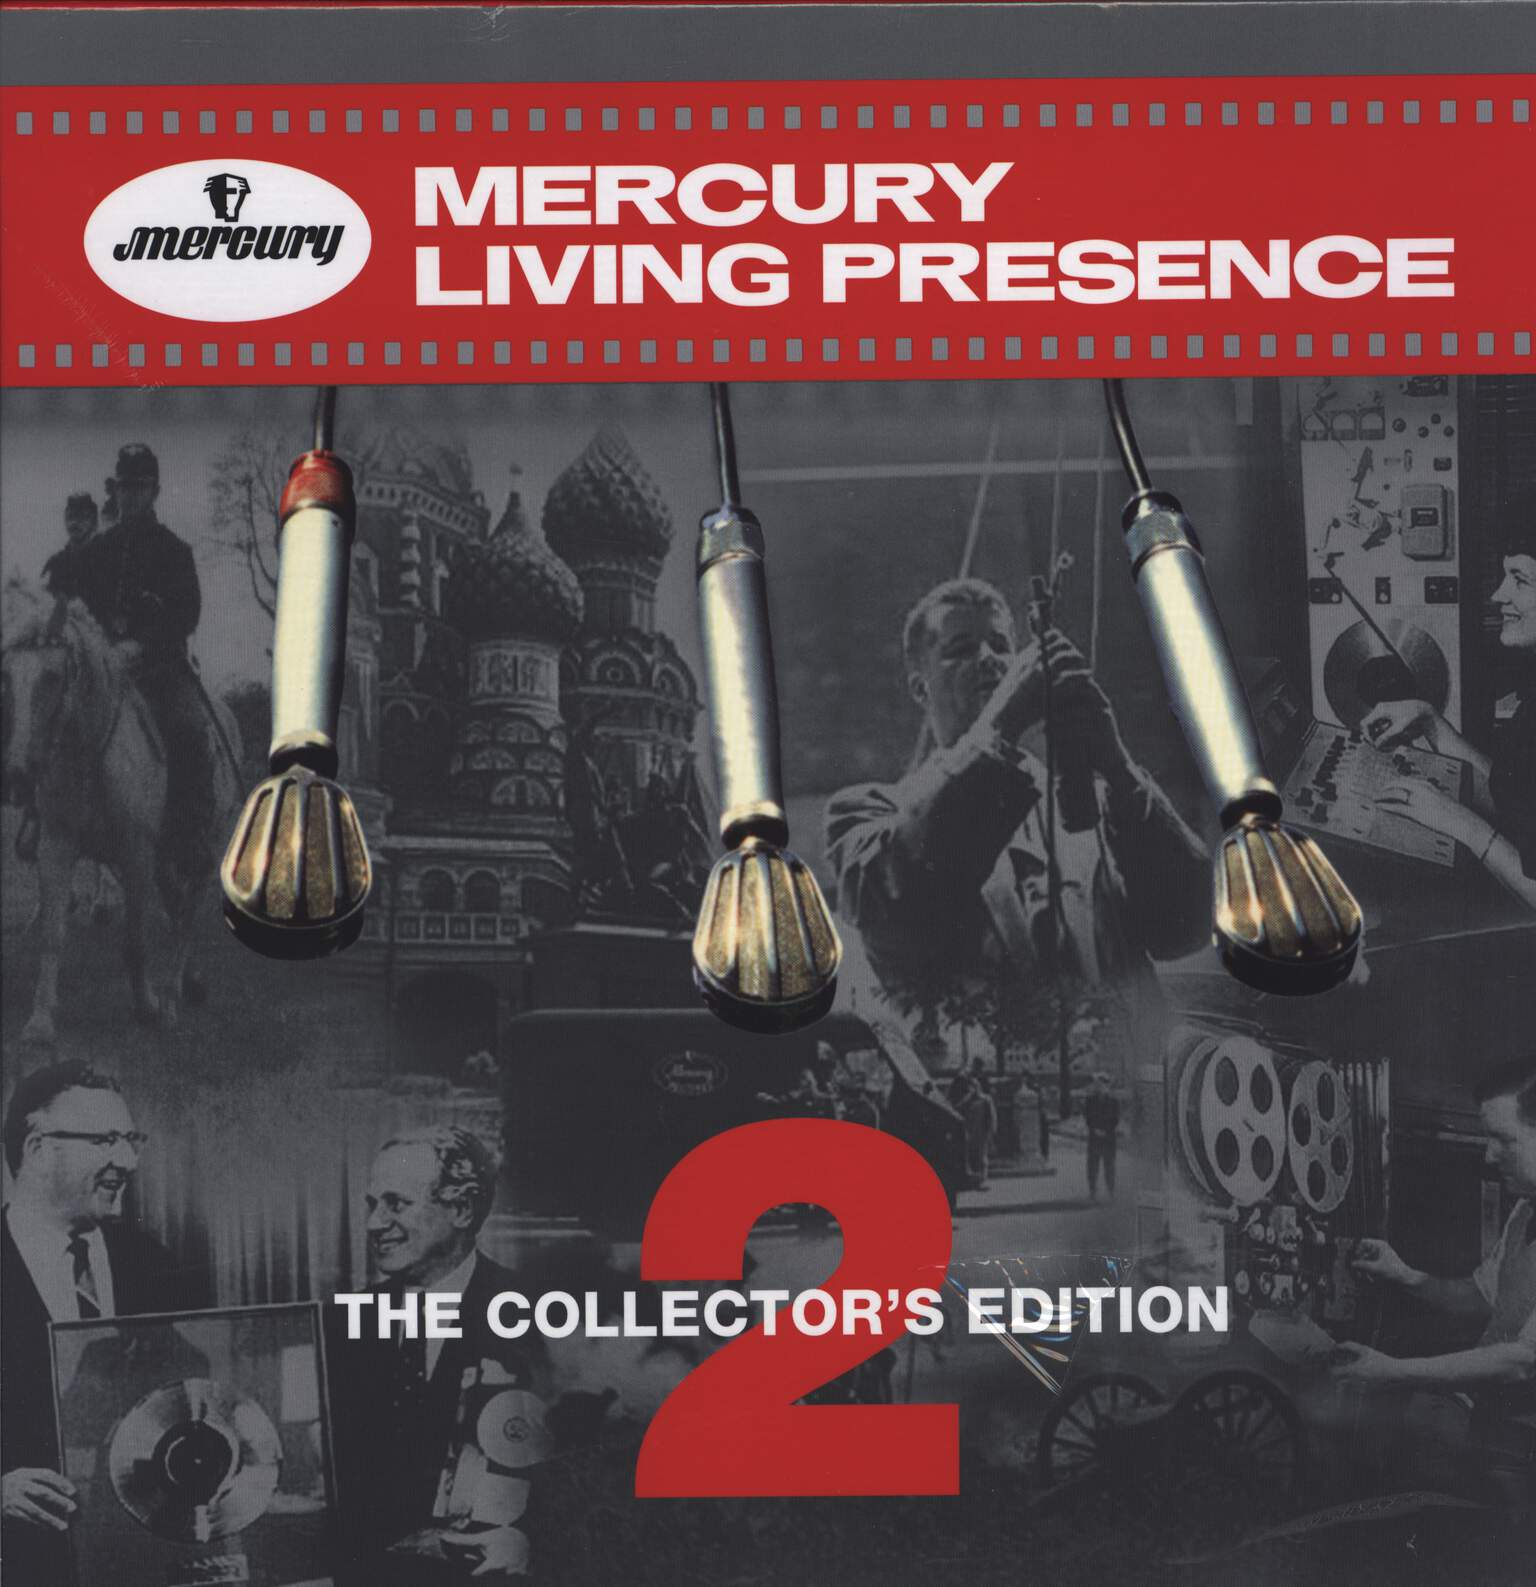 Various: Mercury Living Presence - The Collector's Edition #2, LP (Vinyl)